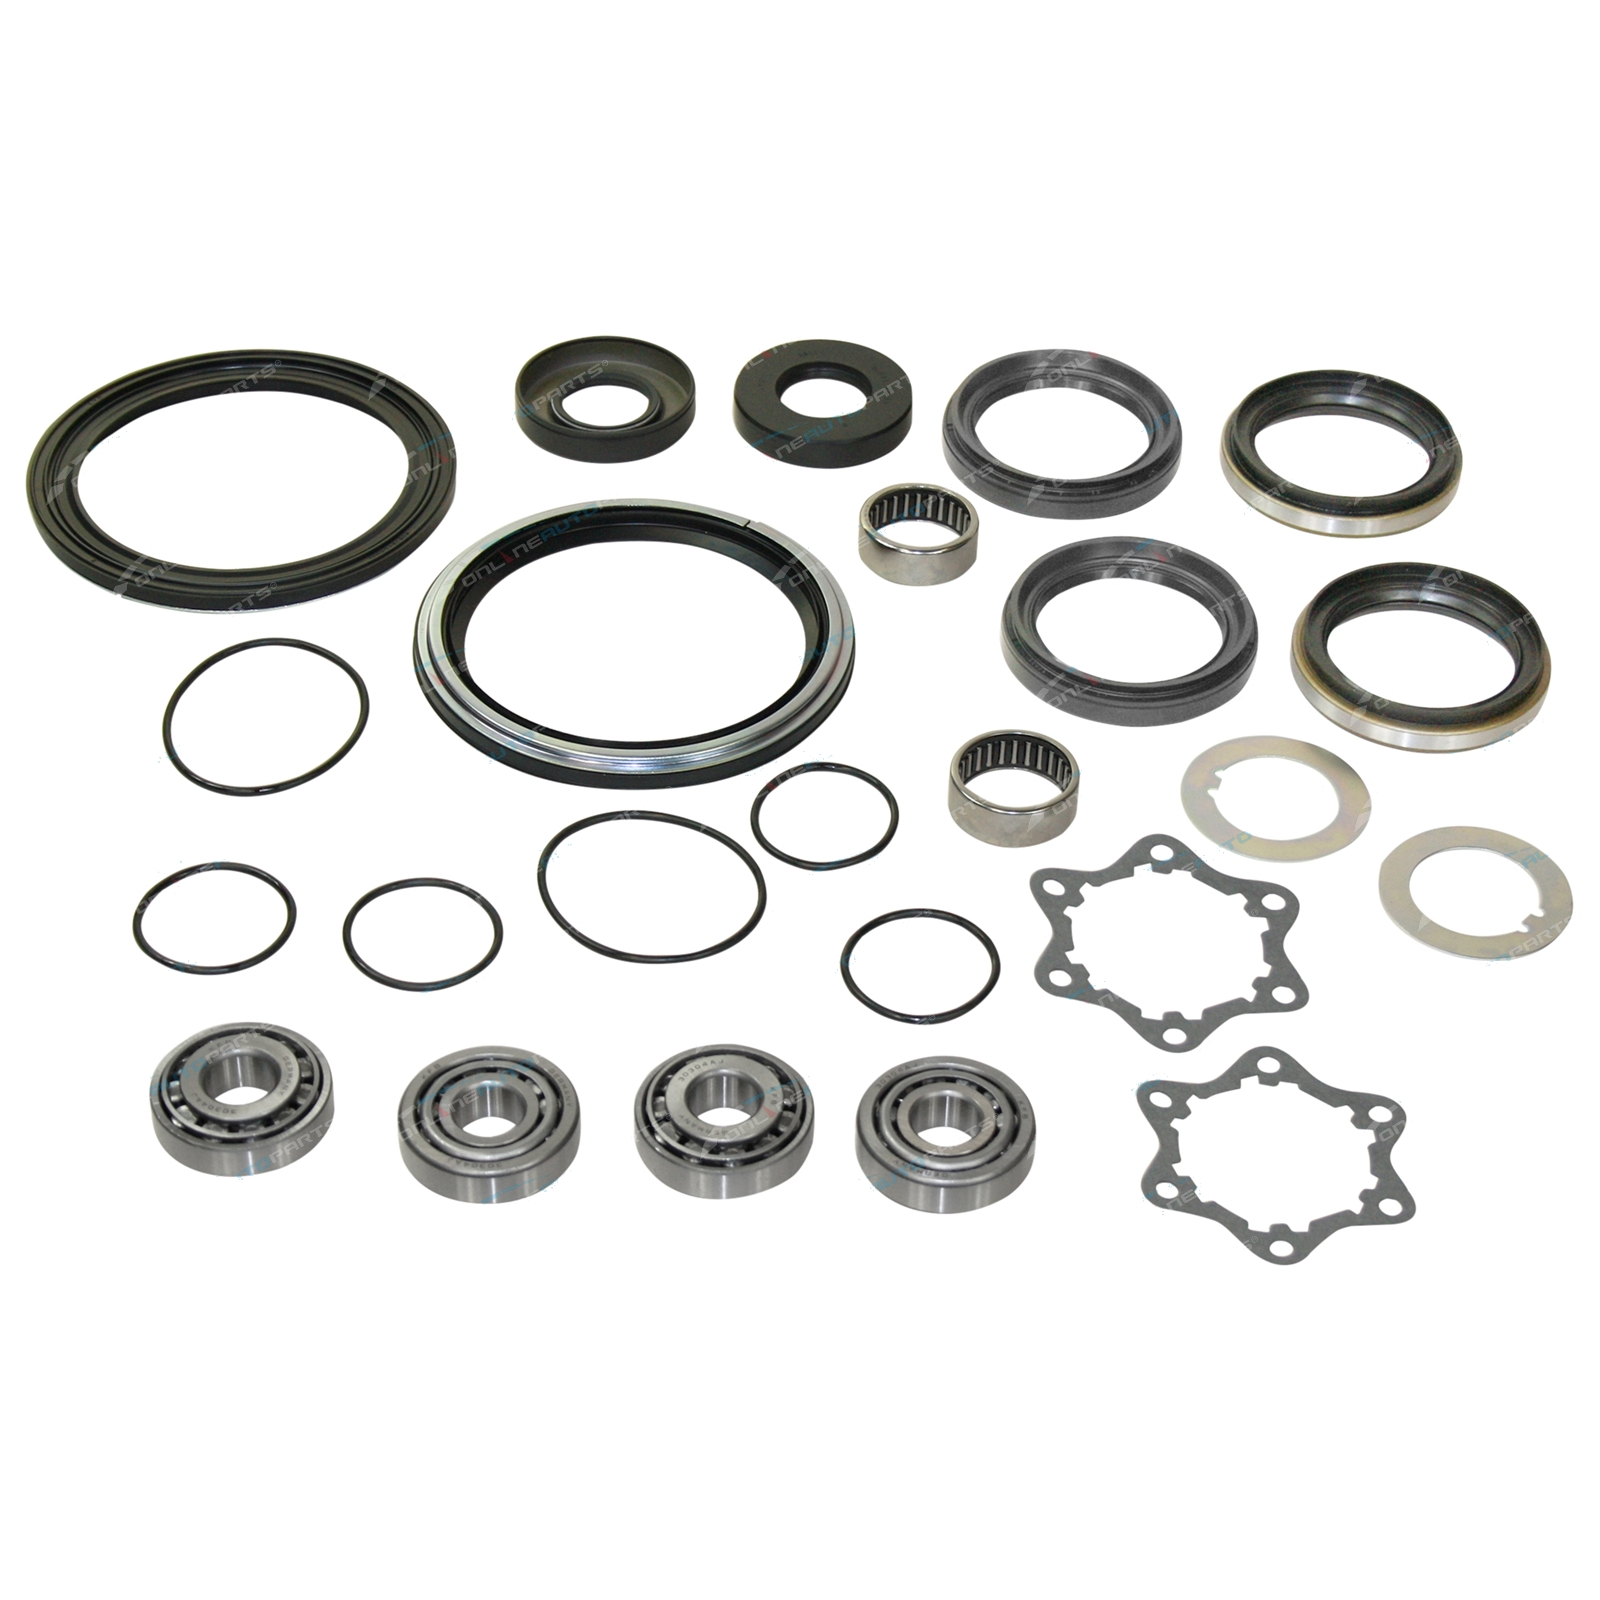 Swivel Hub Repair Kit Nis/dat Swivel Hub Kit OEM Replacement